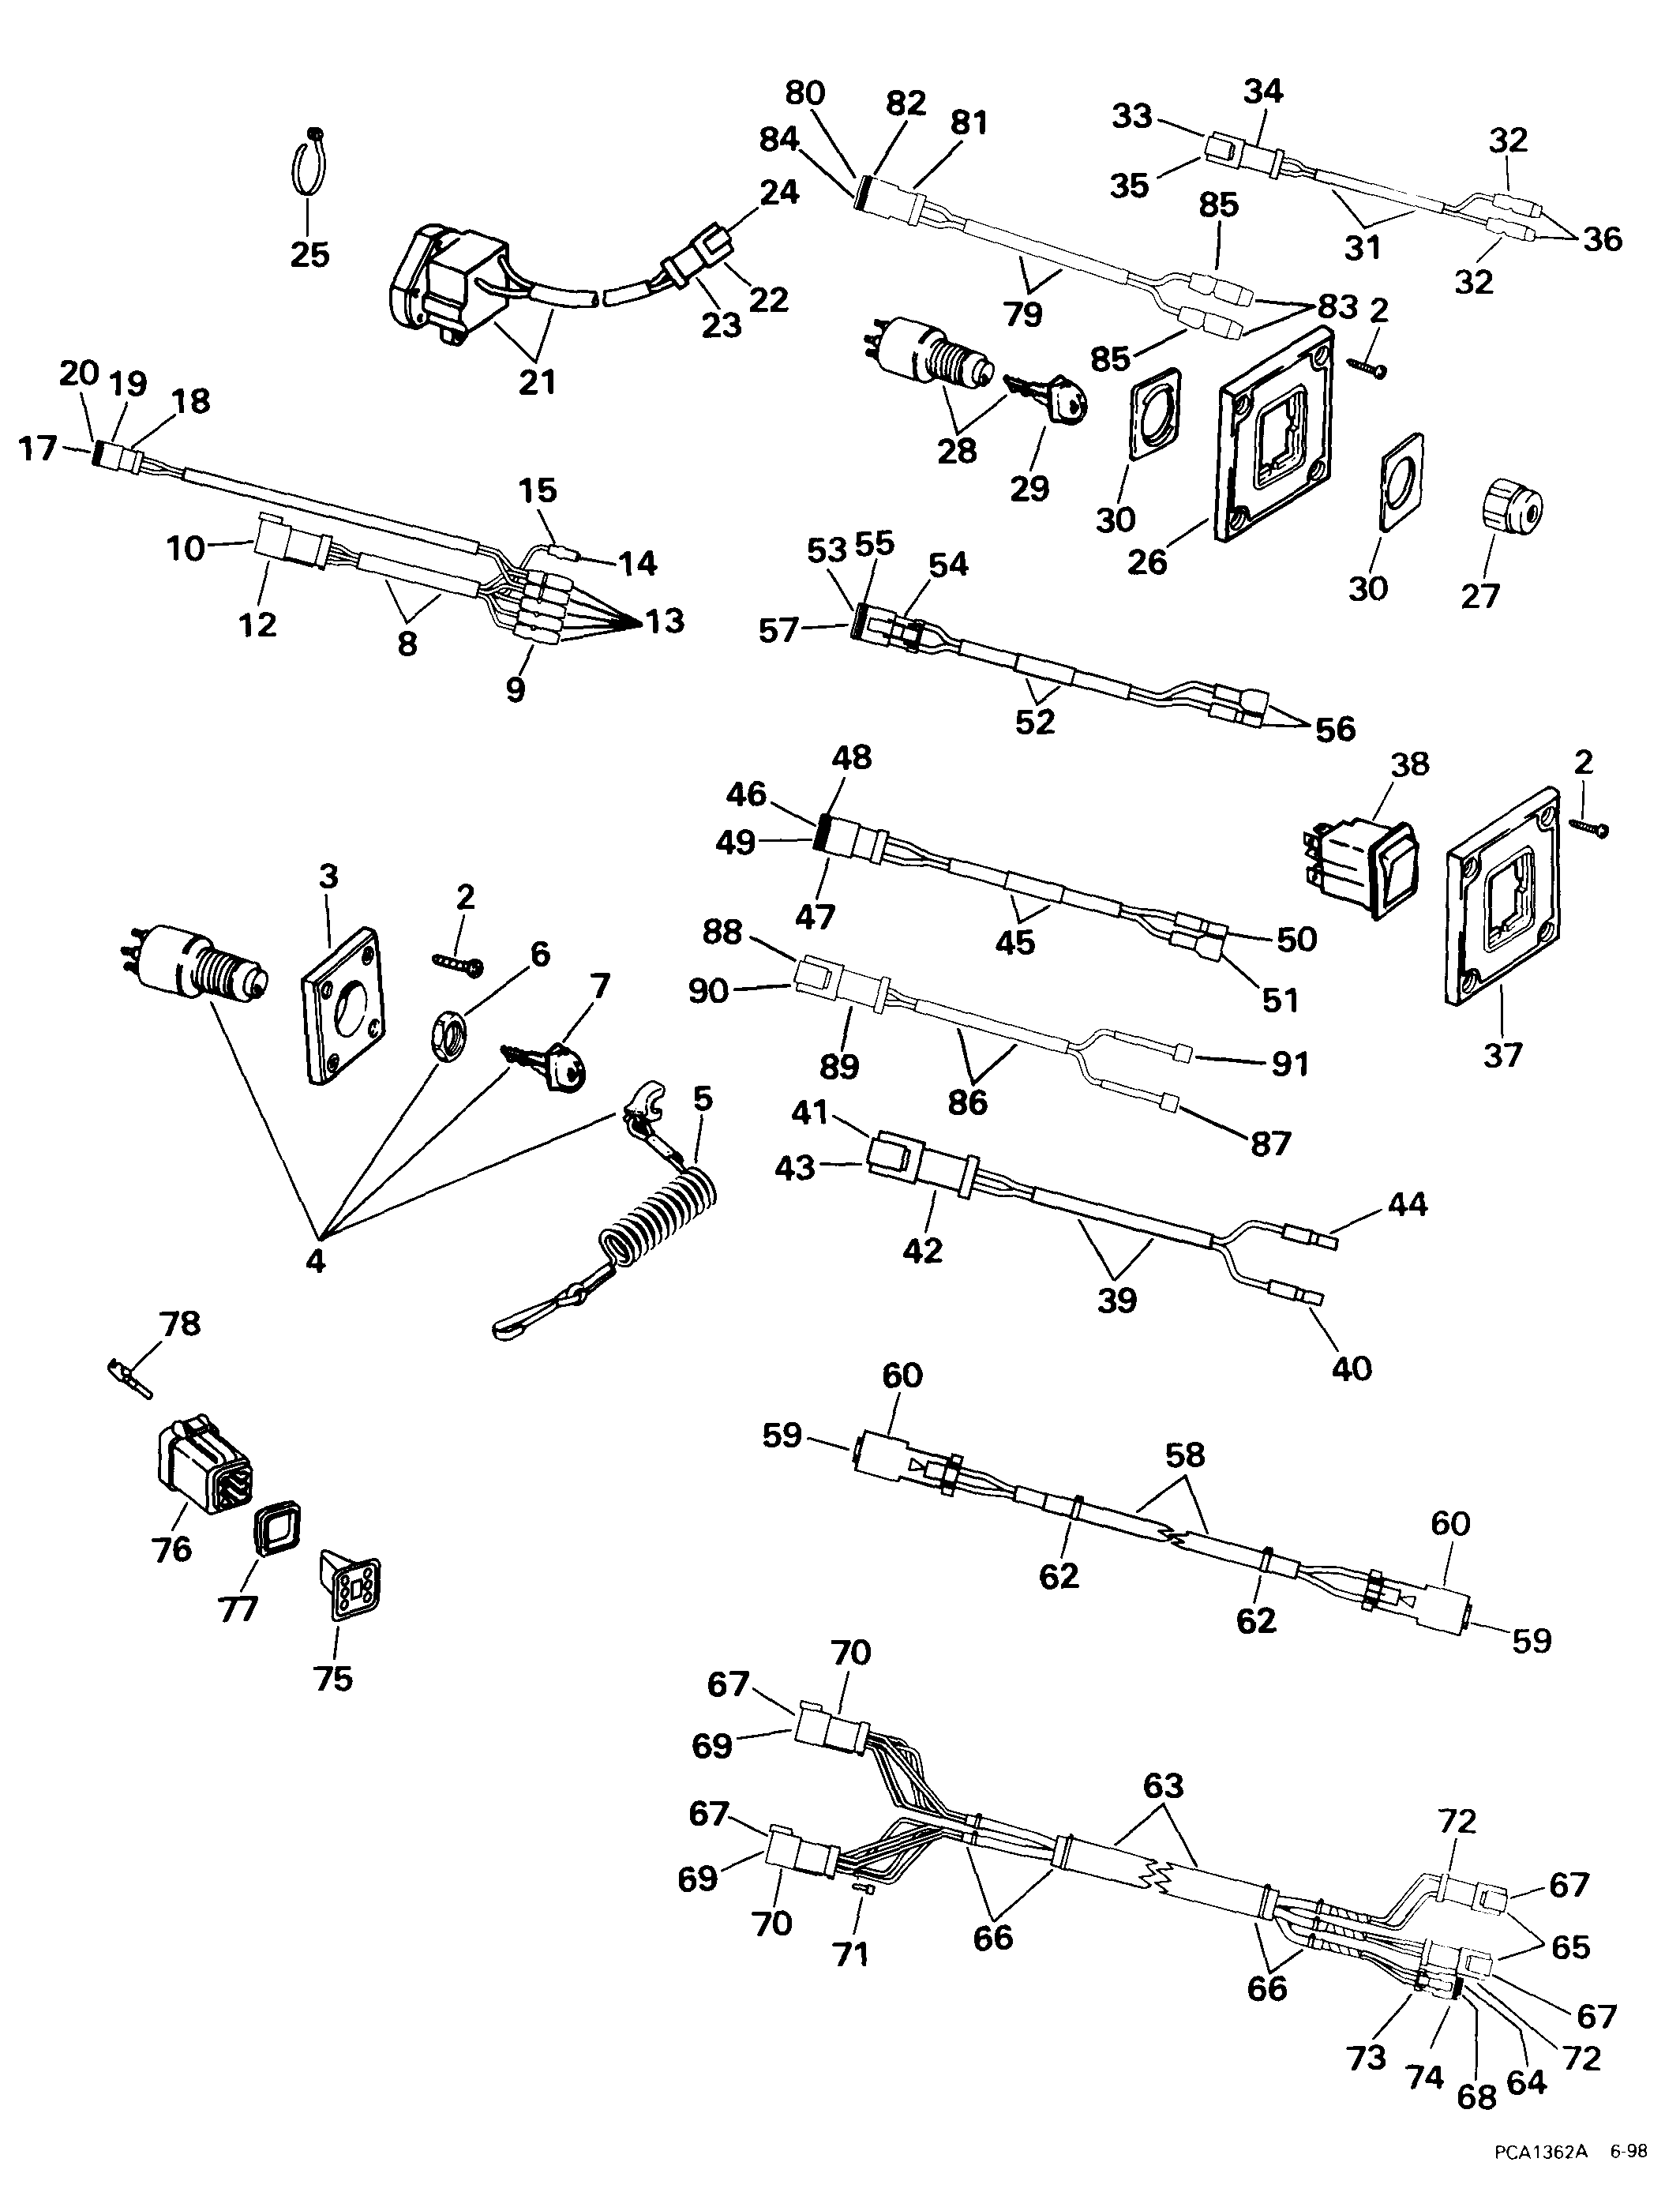 5005800 Brp Evinrude Ignition Switch Wiring Diagram Start Building 1988 Kit Dual Station Single Engine Electrical 1999 Rh Marineengine Com Boat